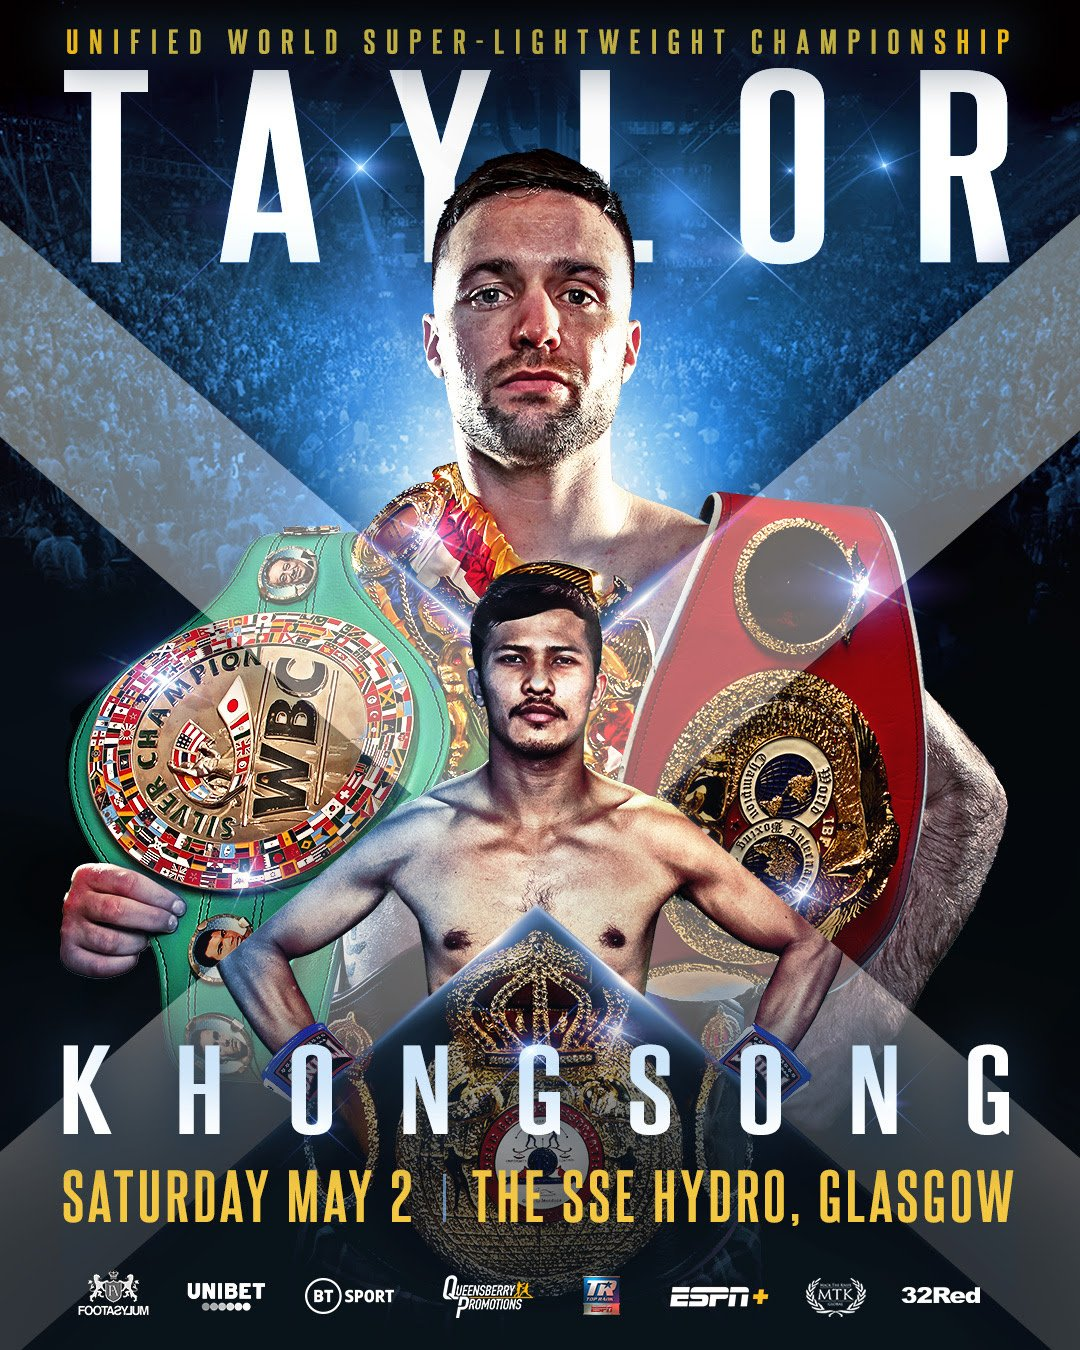 Josh Taylor - UNIFIED WORLD SUPER lightweight champion Josh Taylor will fight in Glasgow again, at the SSE Hydro, for his mandatory defence of his IBF title against the unbeaten Thai Apinun Khongsong on Saturday May 2, live on BT Sport.